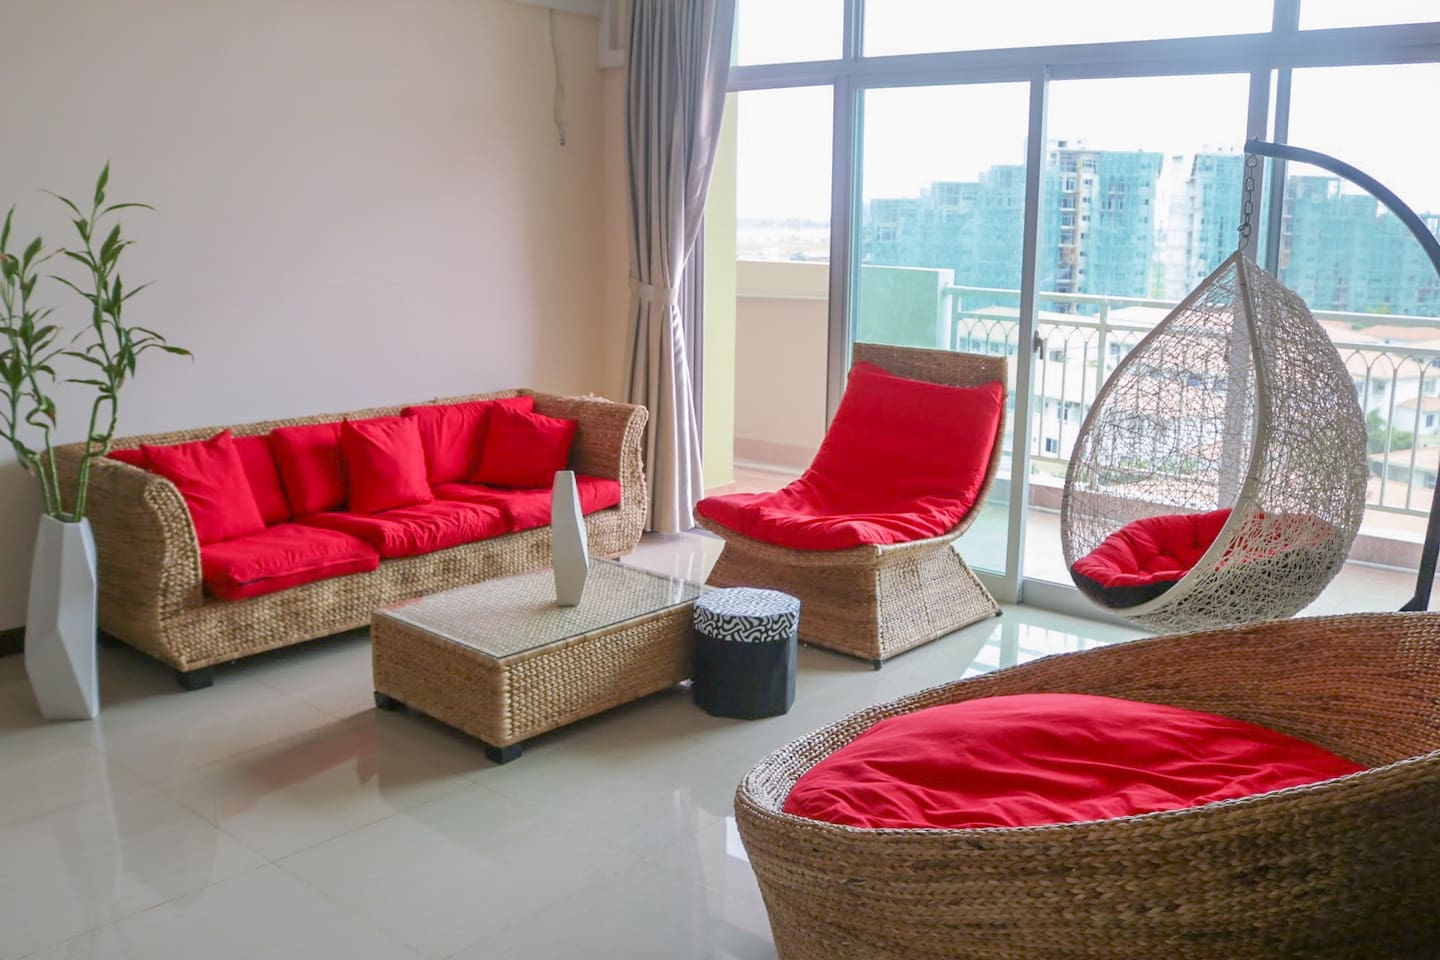 Enjoy Phnom Penh from a peaceful view...